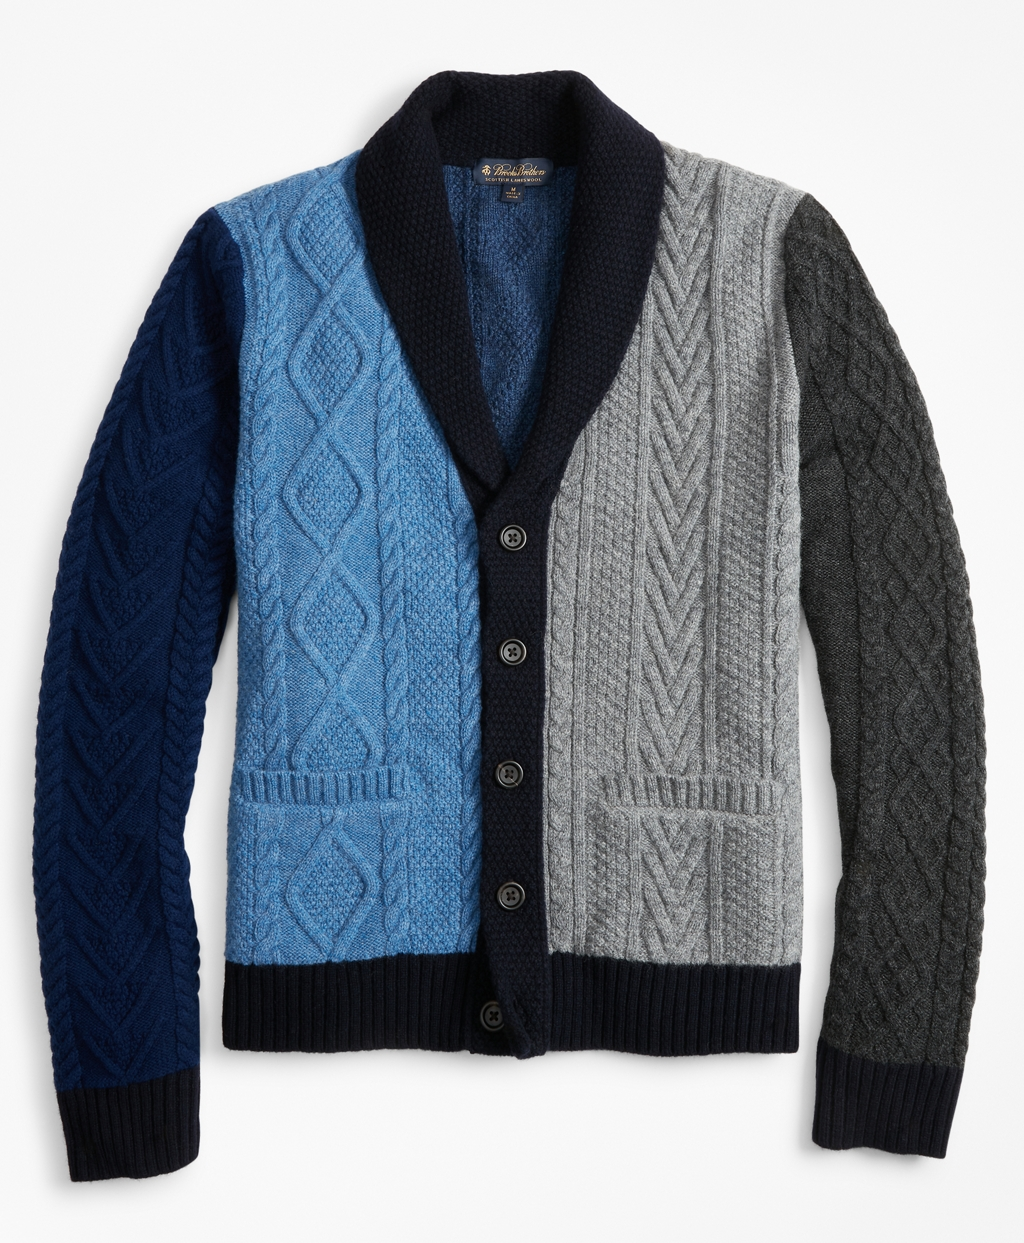 Men's Vintage Sweaters – 1920s to 1960s Retro Jumpers Brooks Brothers Mens Color-Block Cable Cardigan $298.00 AT vintagedancer.com